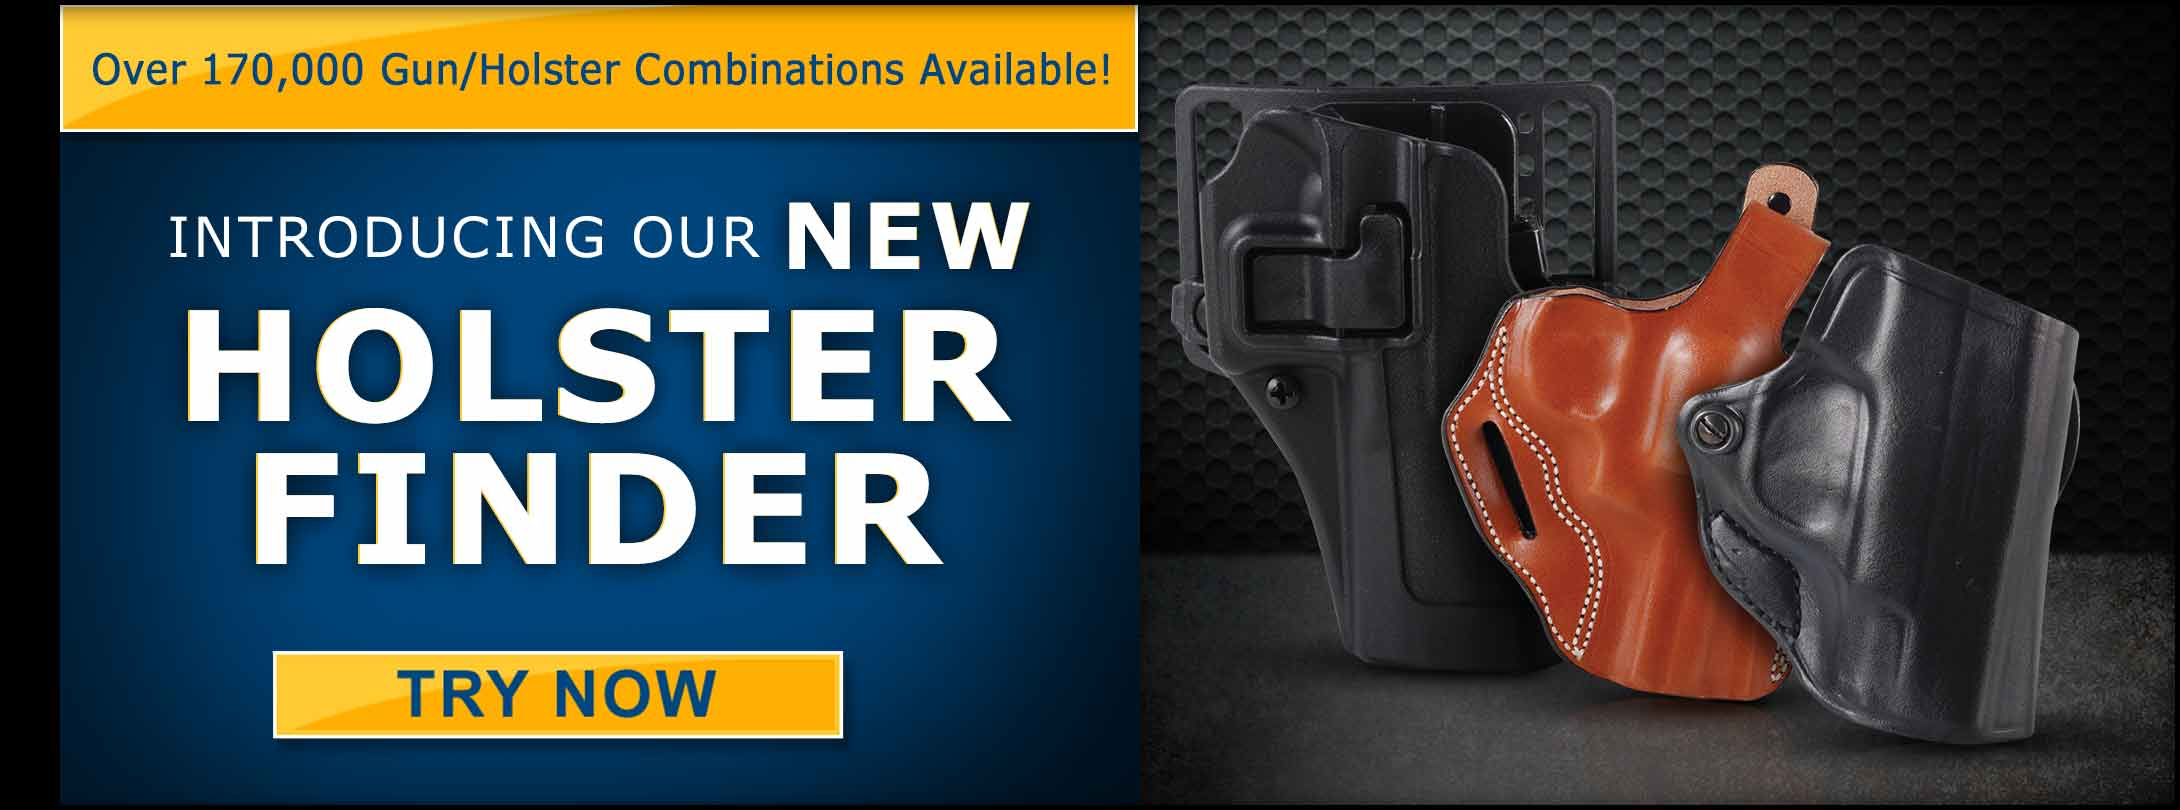 Finding a Holster Just Got Easier + Save On Your Favorite